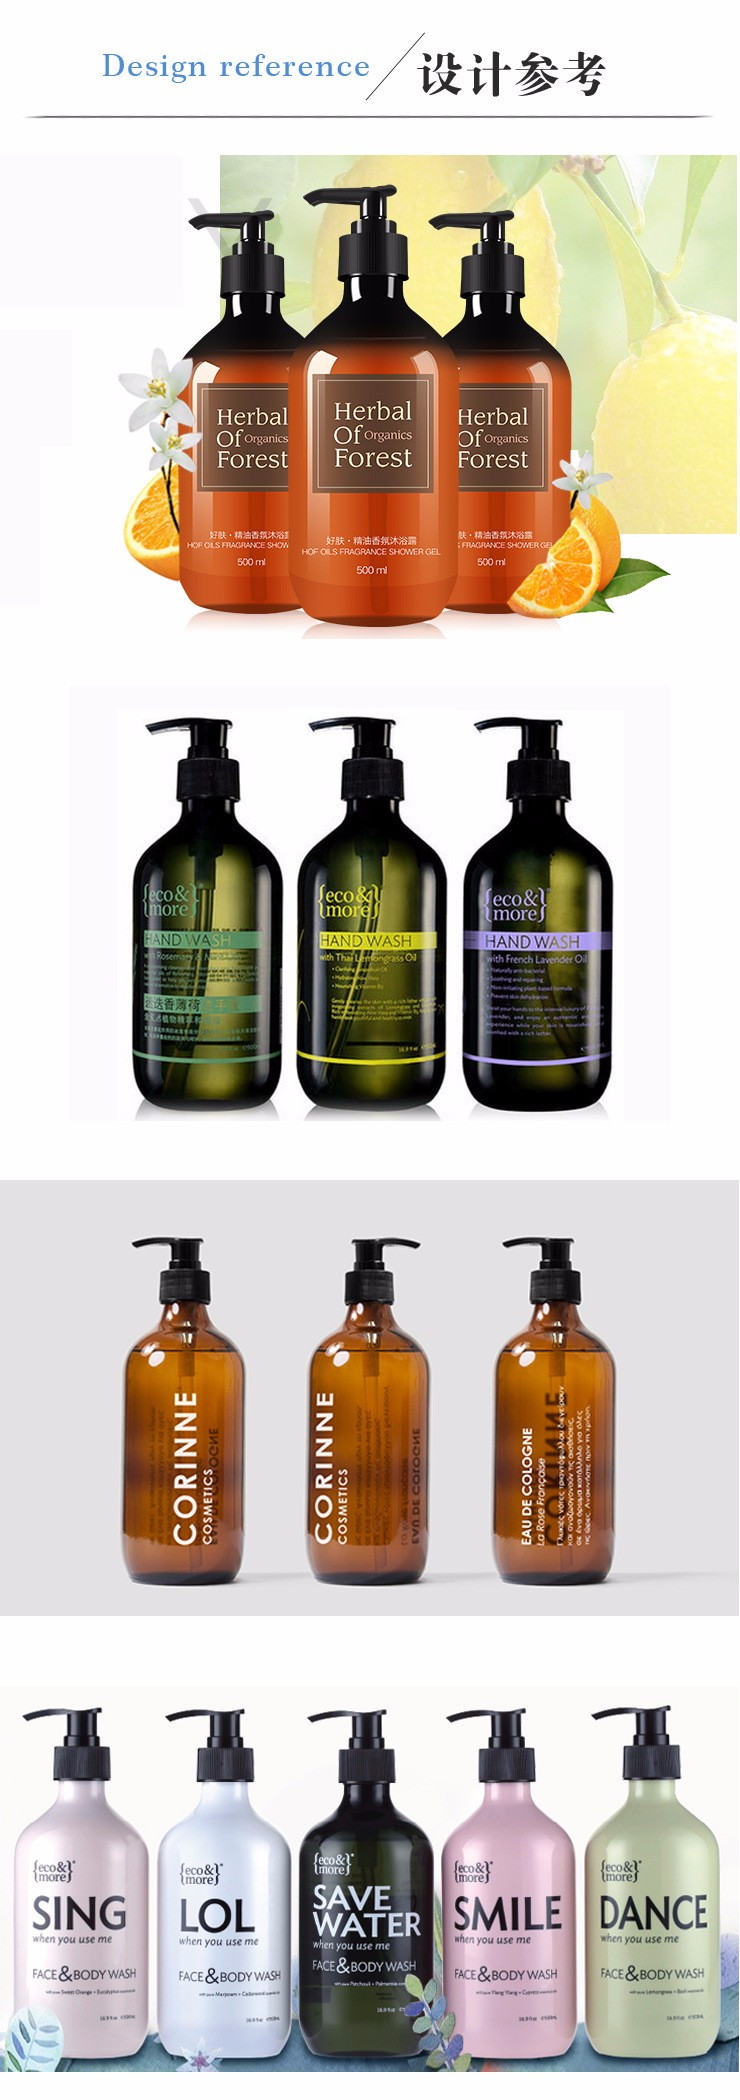 500ML Plastic PET Bottle Brown & Green Color for Shampoo/Toner/Body Wash Filling With Black Plastic PP Pump Sprayer